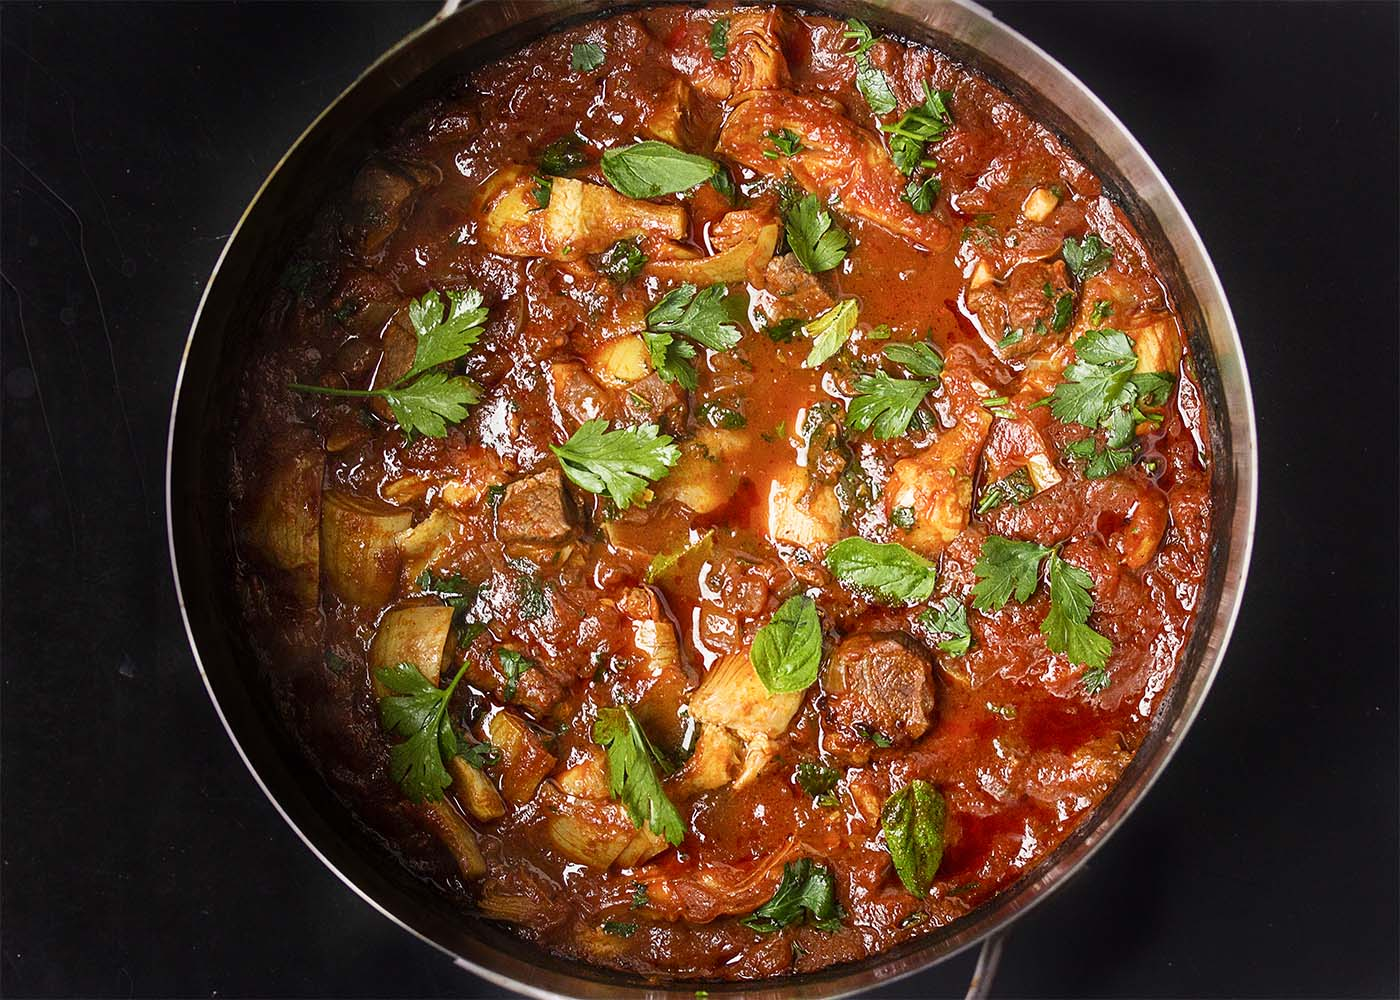 Top view of a big pot of spring Greek lamb stew with artichokes and fresh herbs.